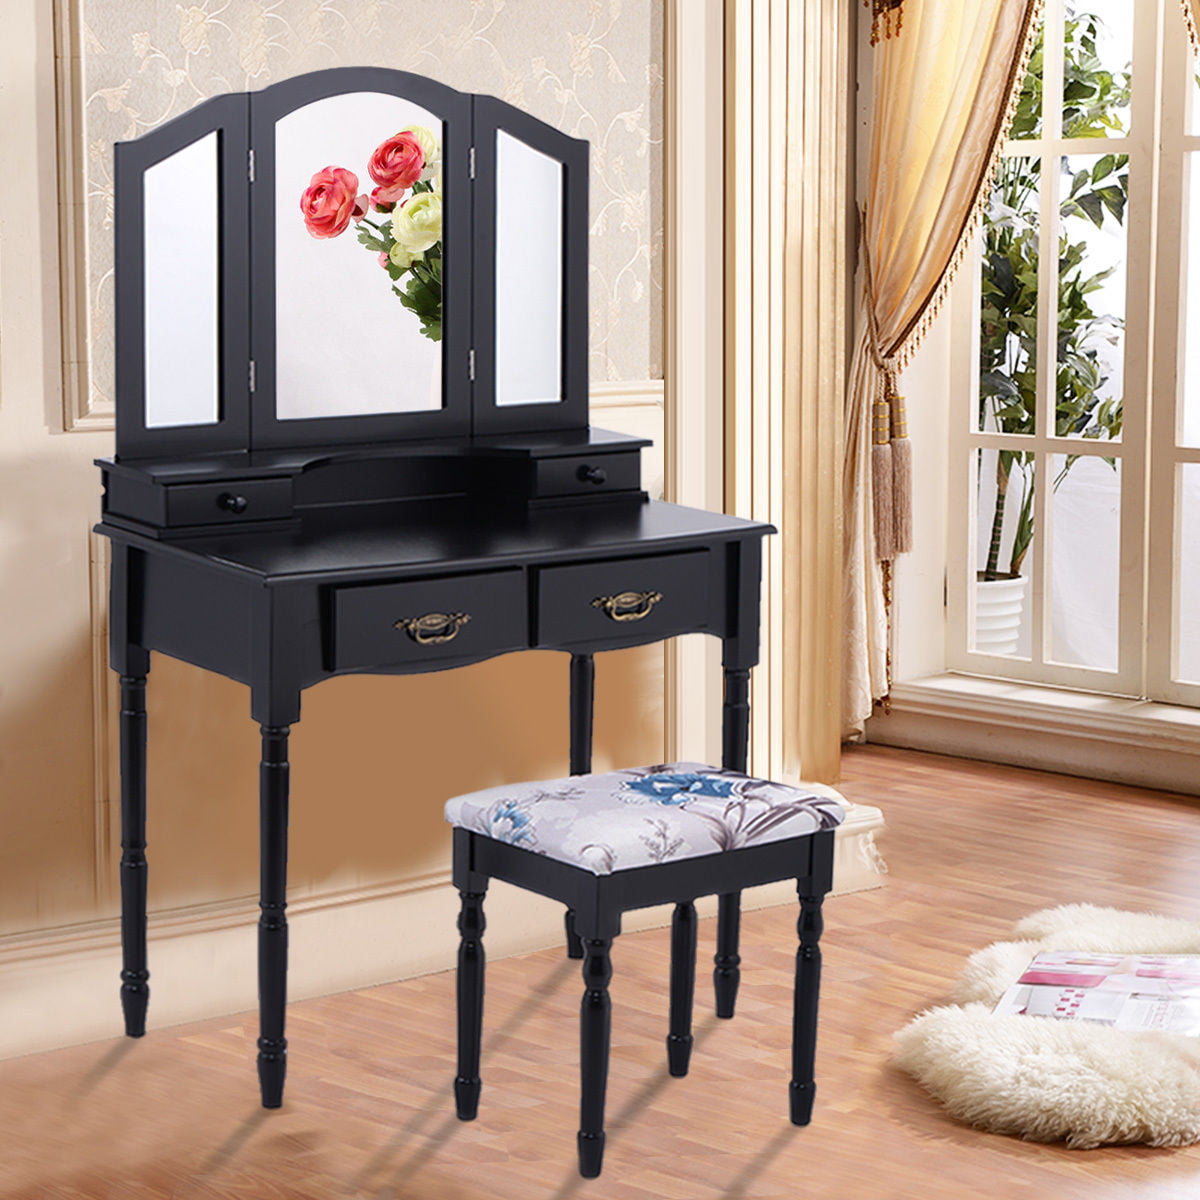 Costway Black Tri Folding Mirror Vanity Makeup Table Stool Set Home Furni W 4 Drawers by Costway